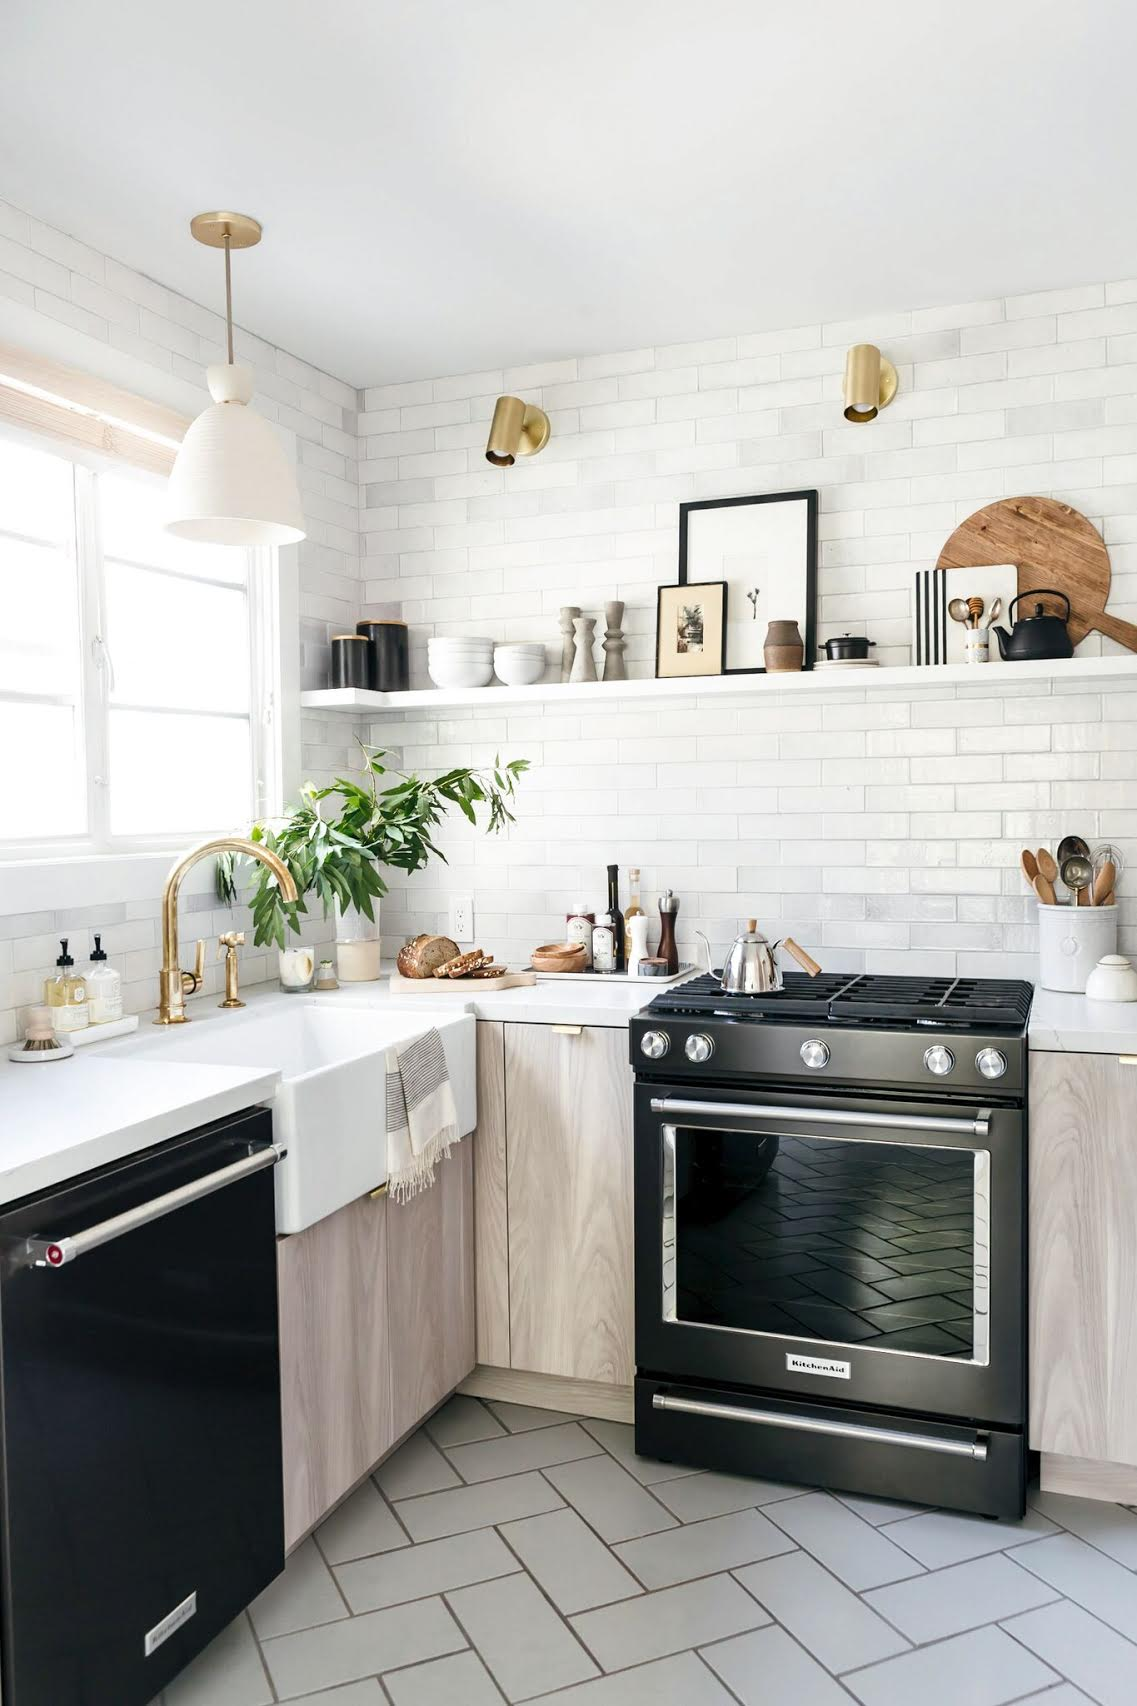 Magnificent Regardless A Small Tips Designing A Small Kitchen Studio Mcgee Interior Design Small Kitchen Ideas Colors You Keeping It Consistent Throughout Is Agood Way To Go kitchen Interior Design Small Kitchens